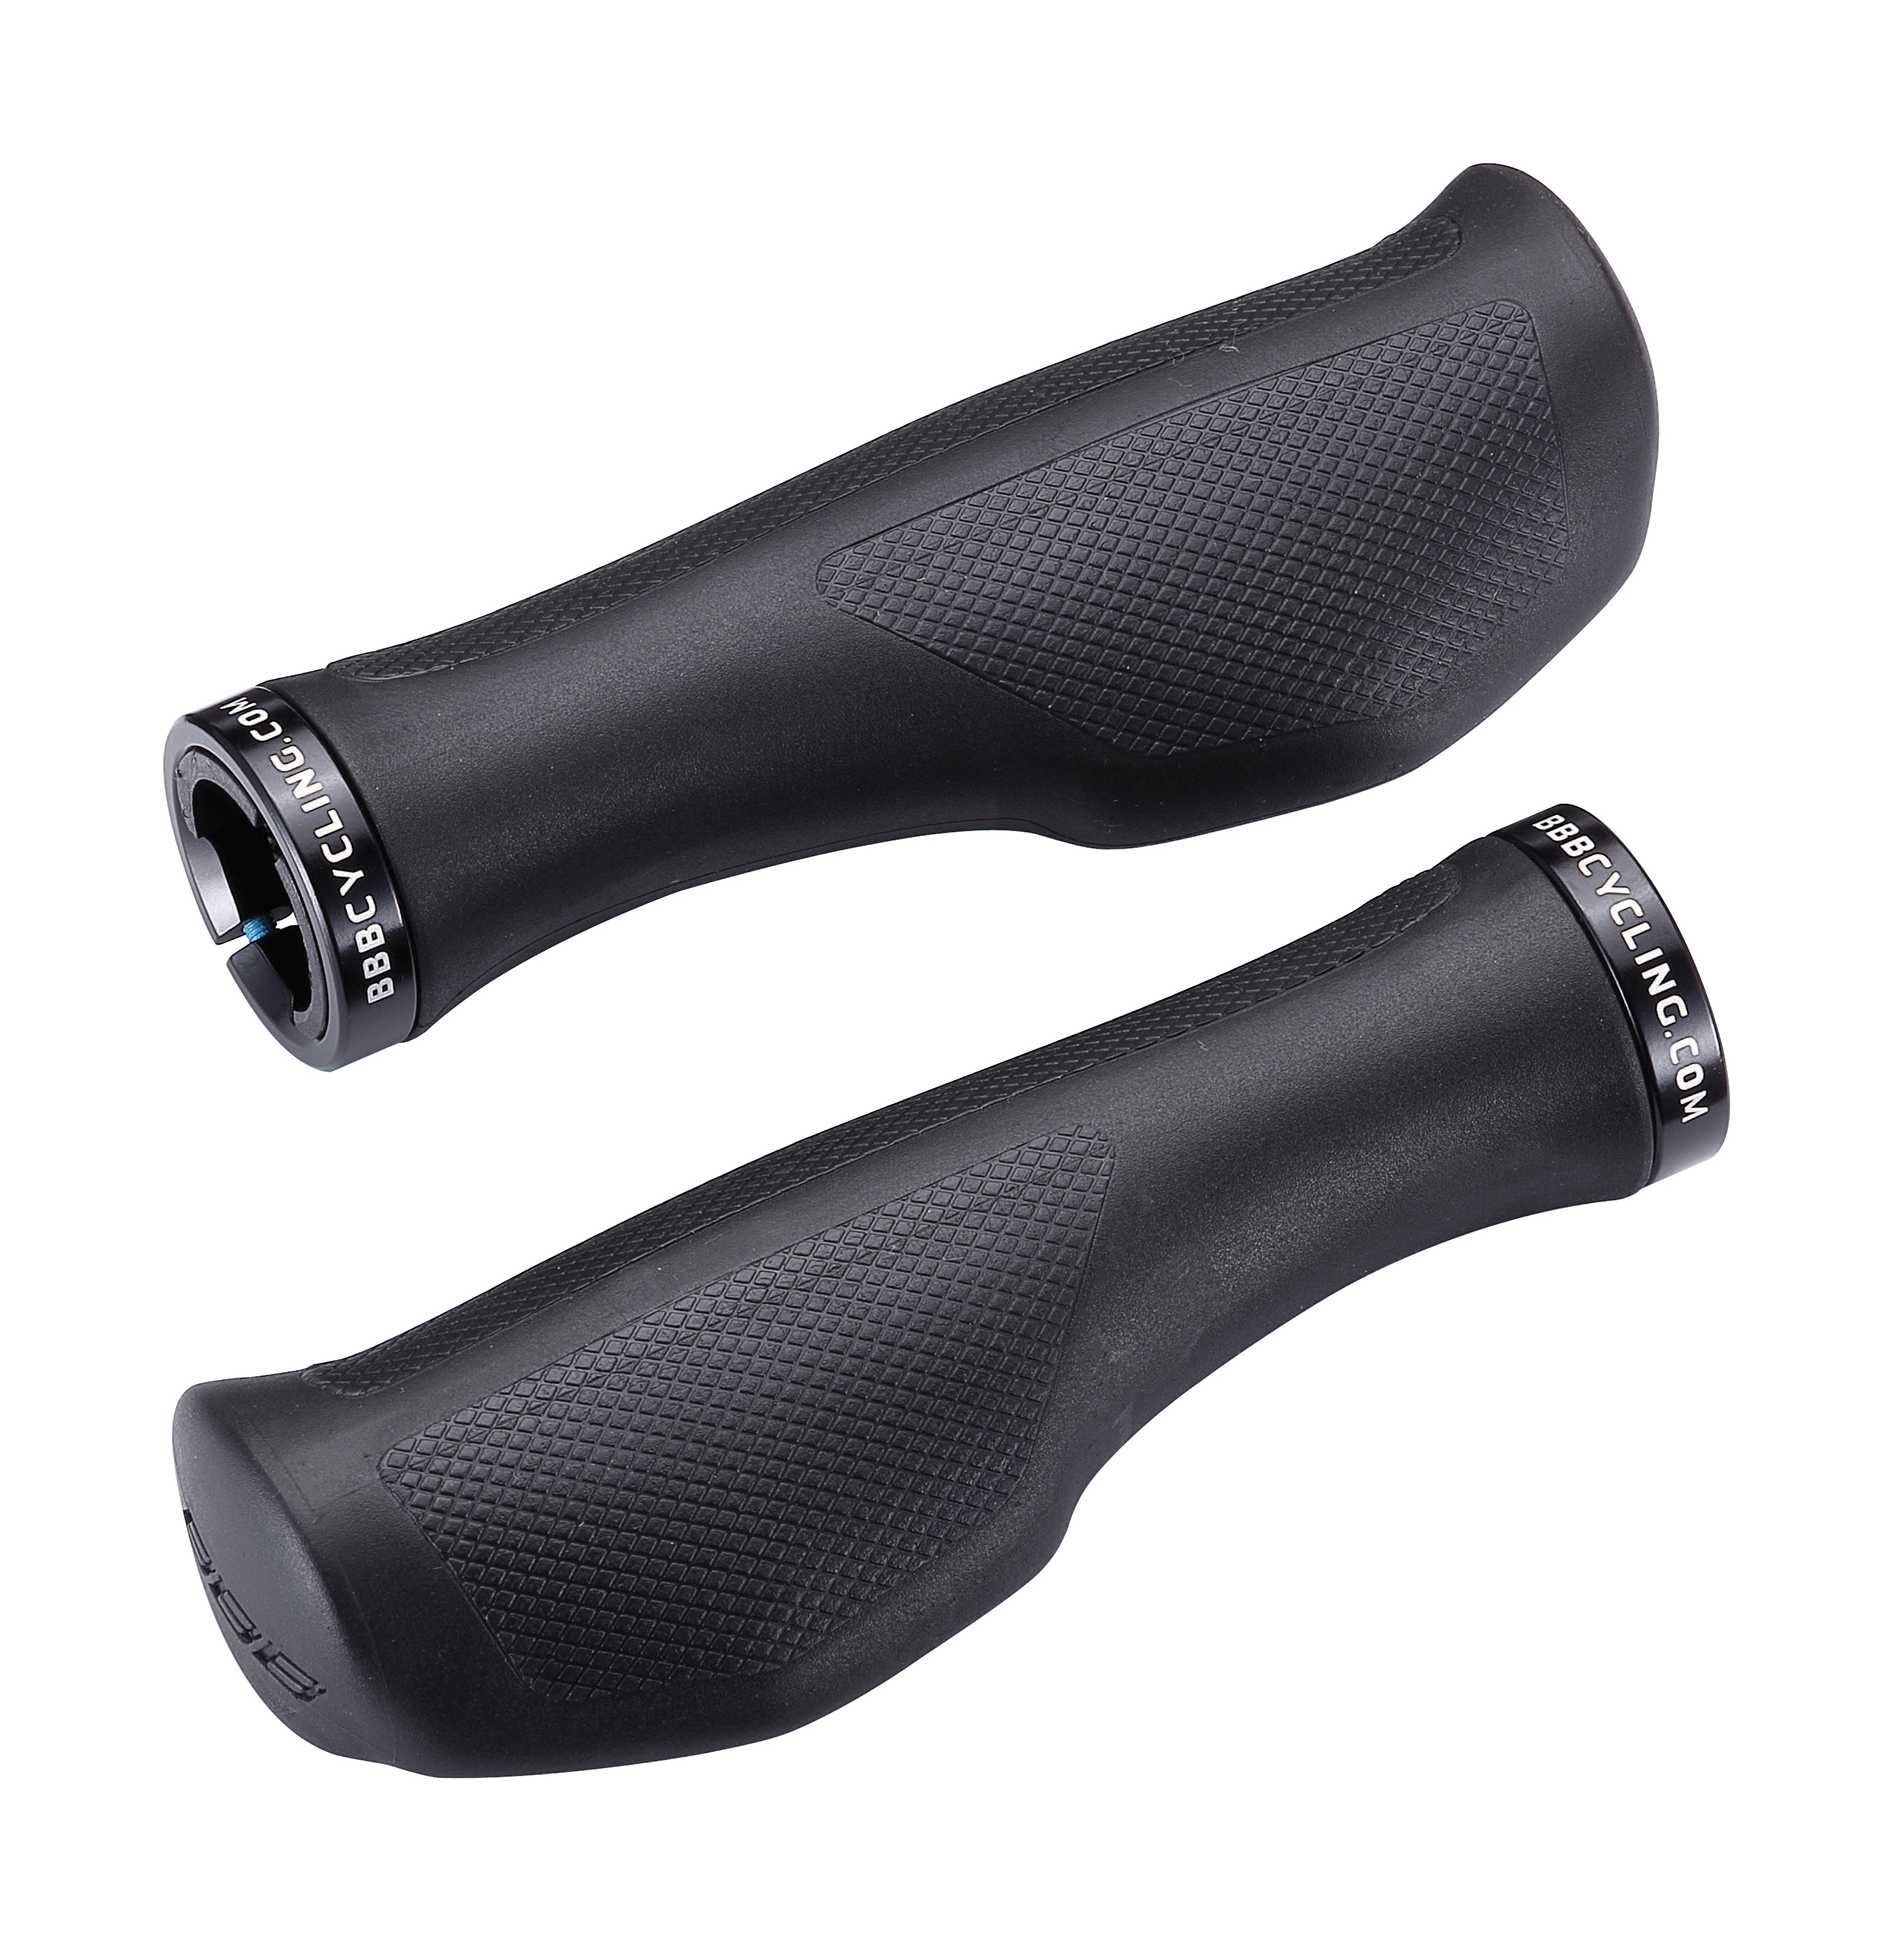 BBB Ergofix Lock-On Ergo Grips 133mm - Black